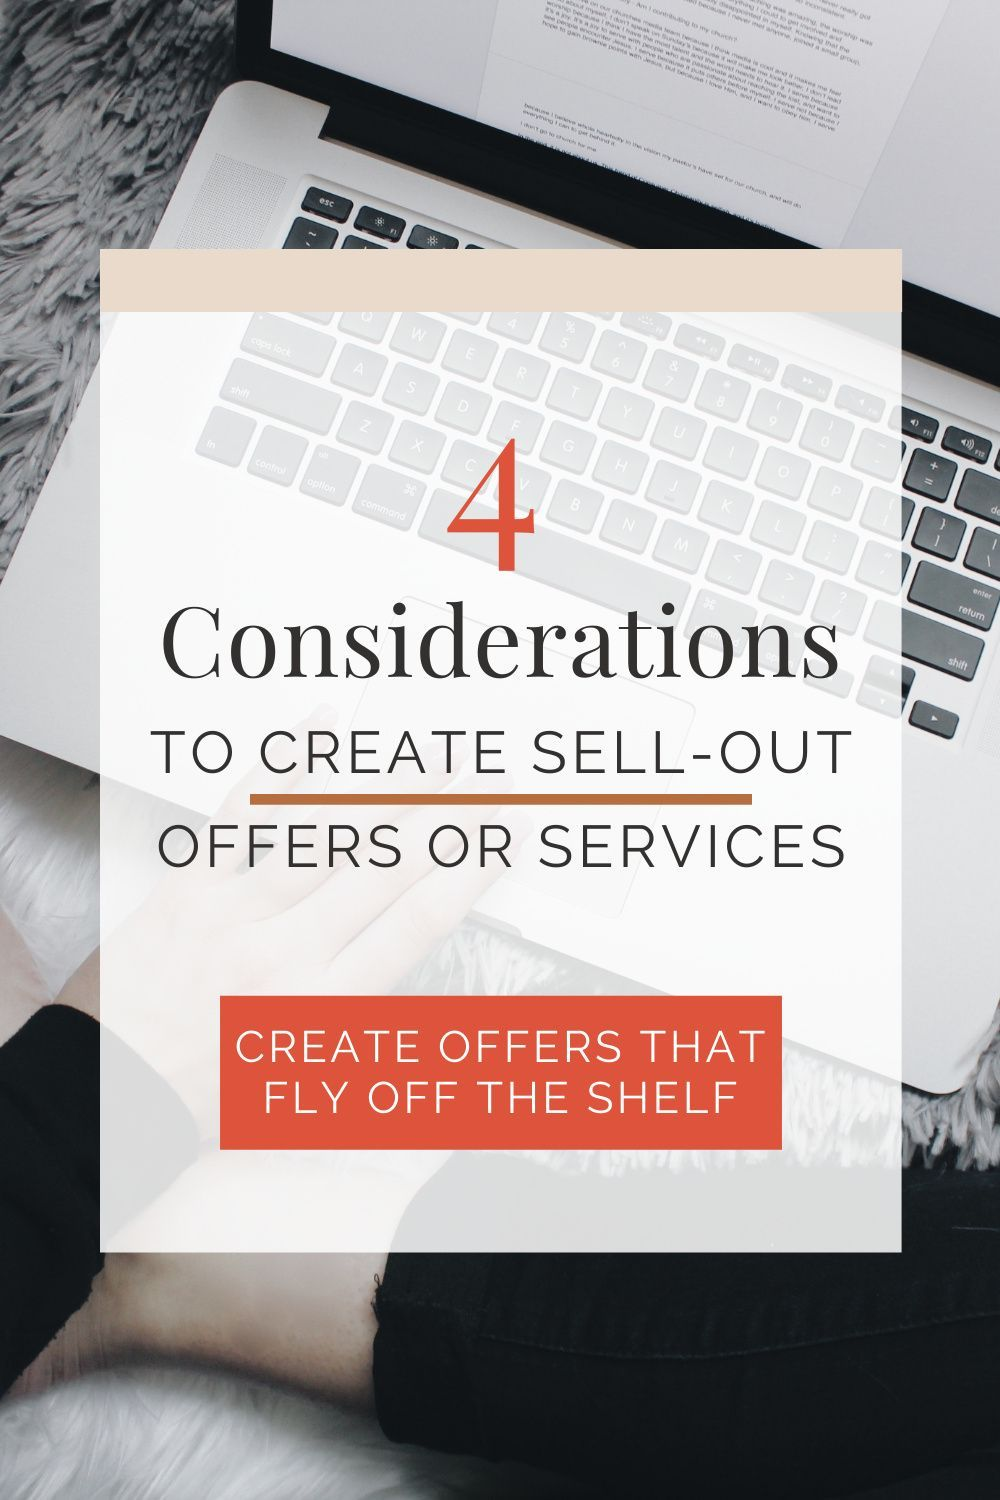 You can use these strategies when creating an offer and after a launch. Use this lens to change or edit your offer into something that fits the needs of your ideal client so that your offers sell out! | Nikki Arensman, Brand Designer and Strategist #entrepreneur #businessideas #creativeentrepreneur